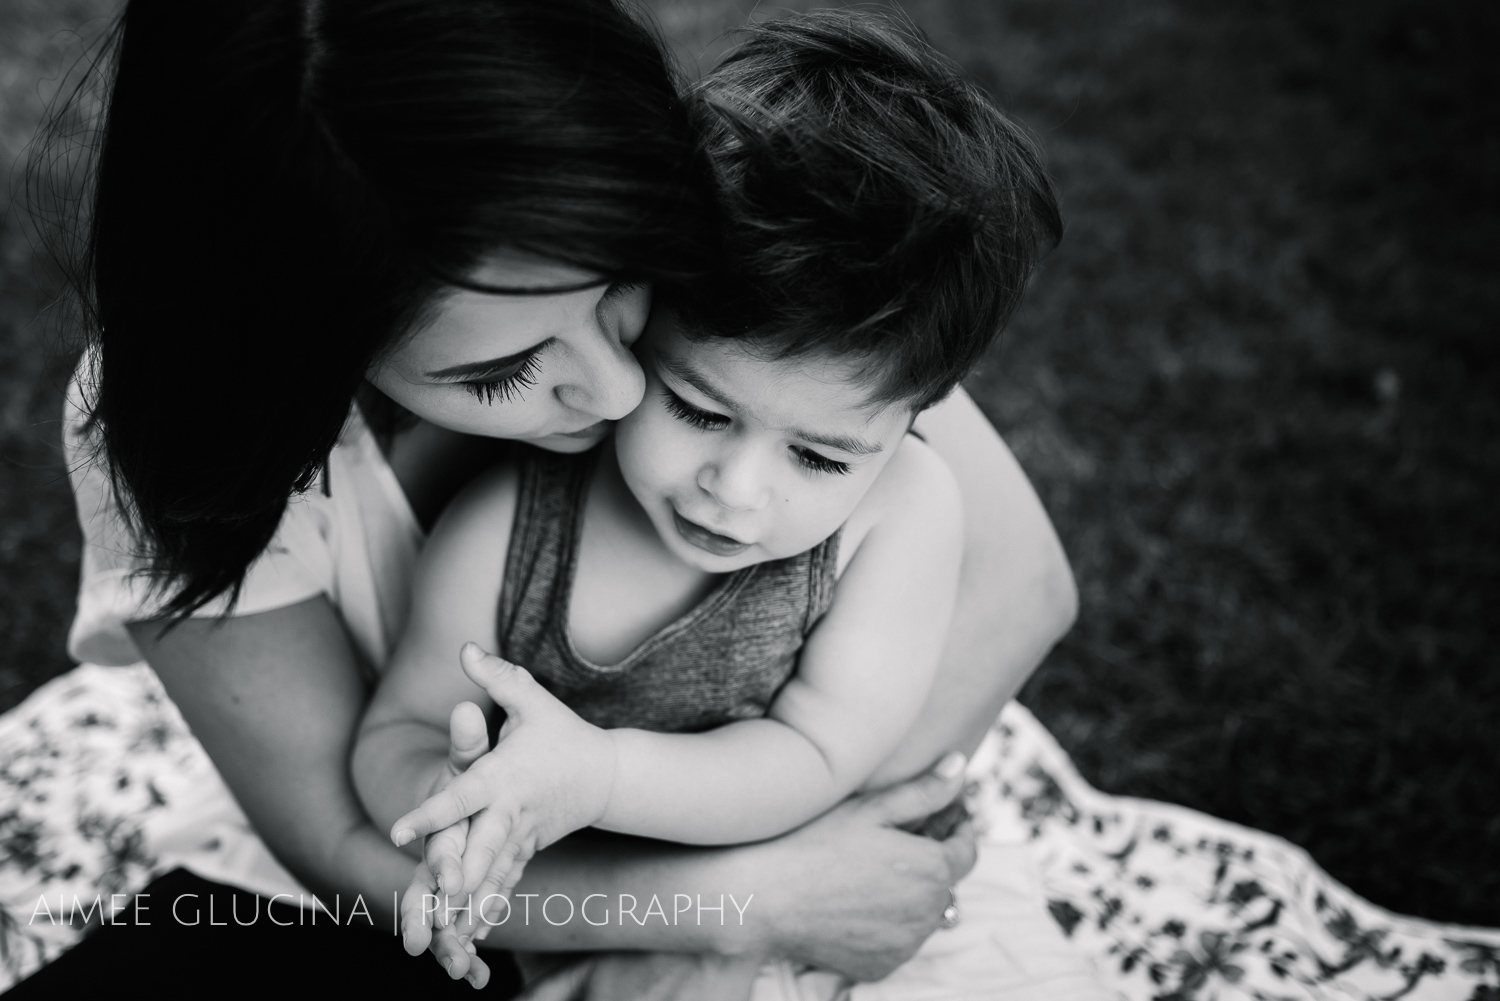 Marks Family B&W Session by Aimee Glucina Photography-8.jpg